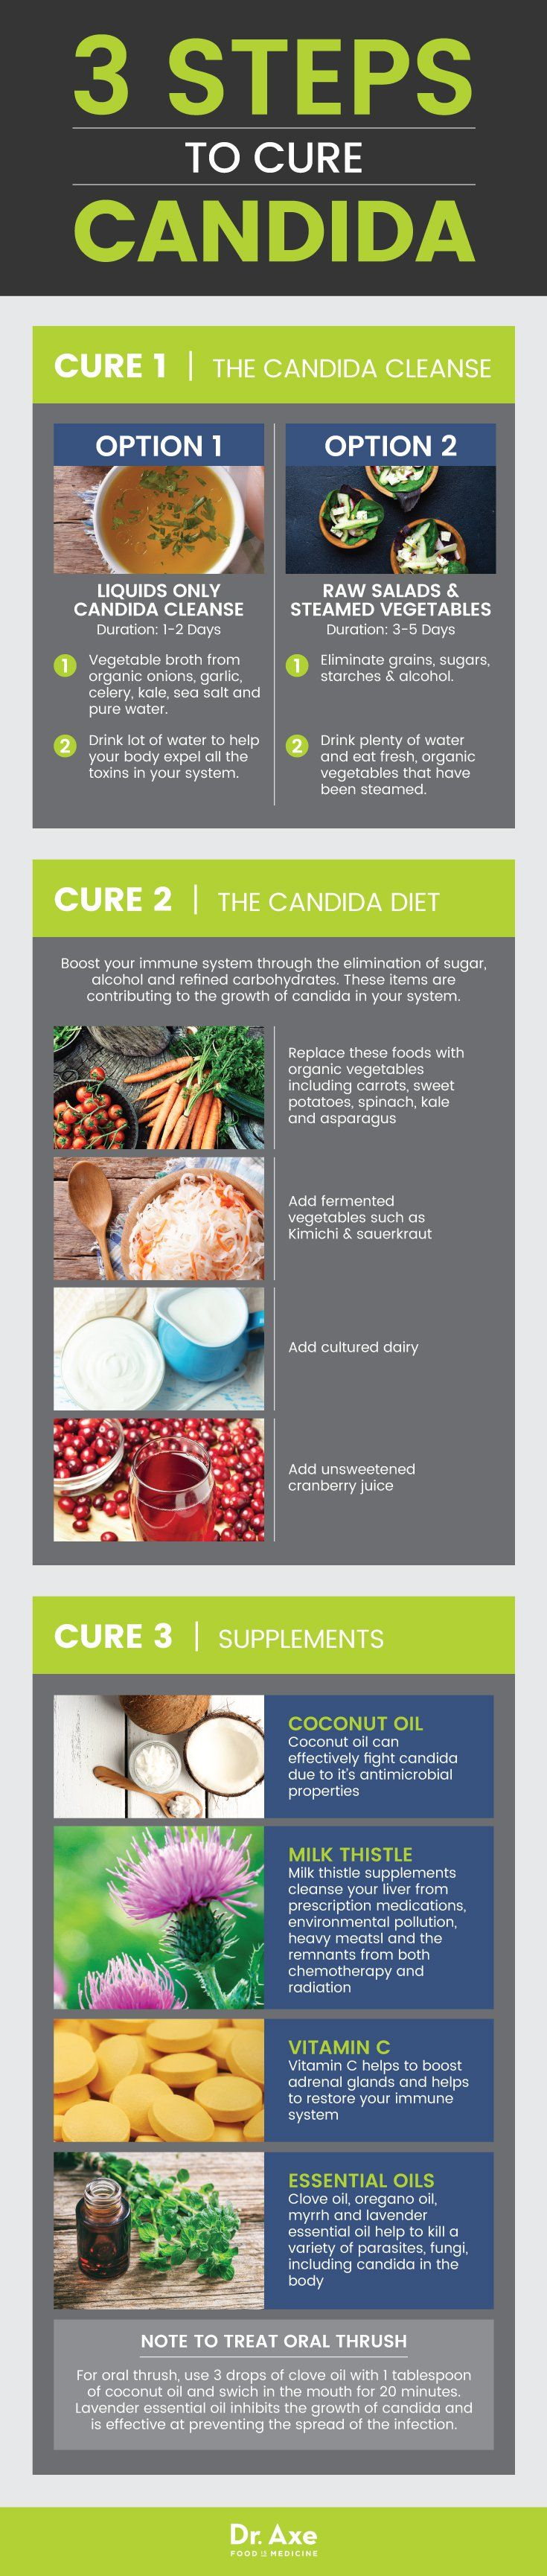 dr axe candida diet plan